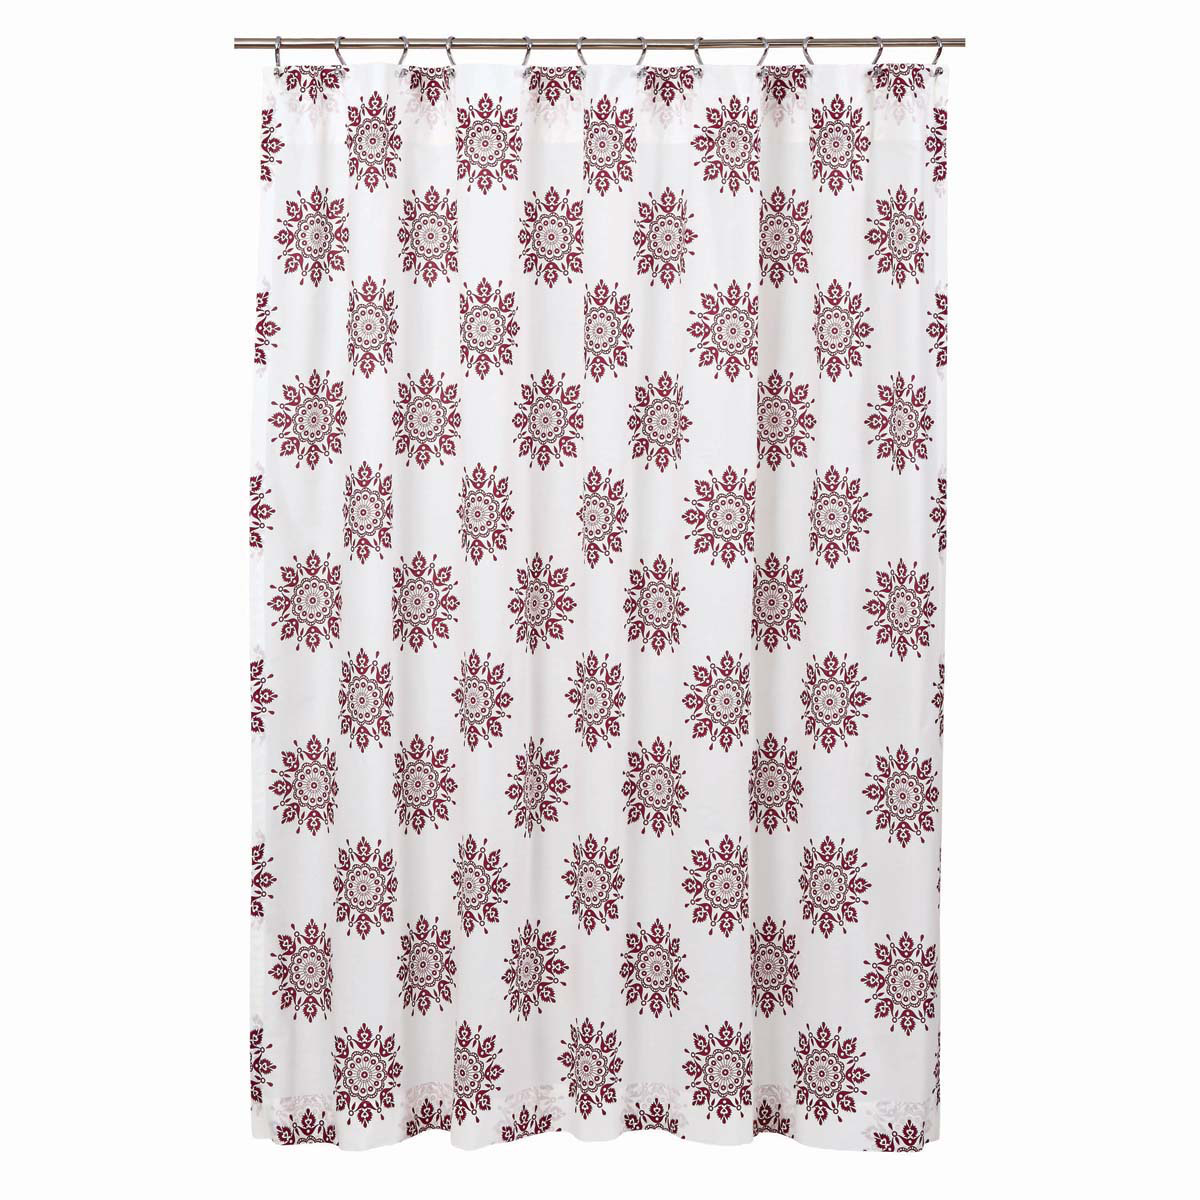 Mariposa Shower Curtain - Fuchsia - Vhc Brands